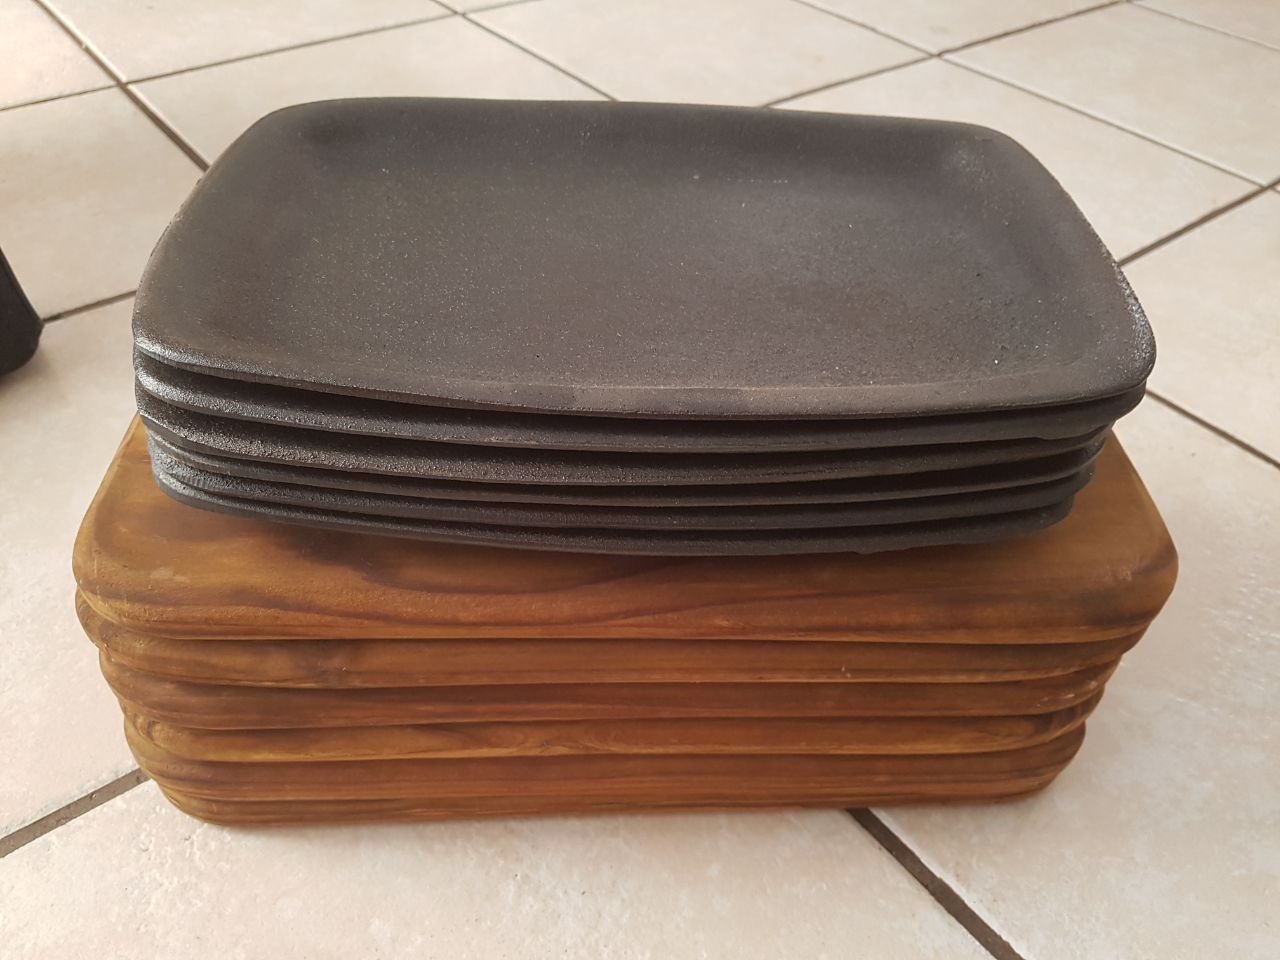 6x Cast Iron Sizzler Steak Plates on Wooden Bases